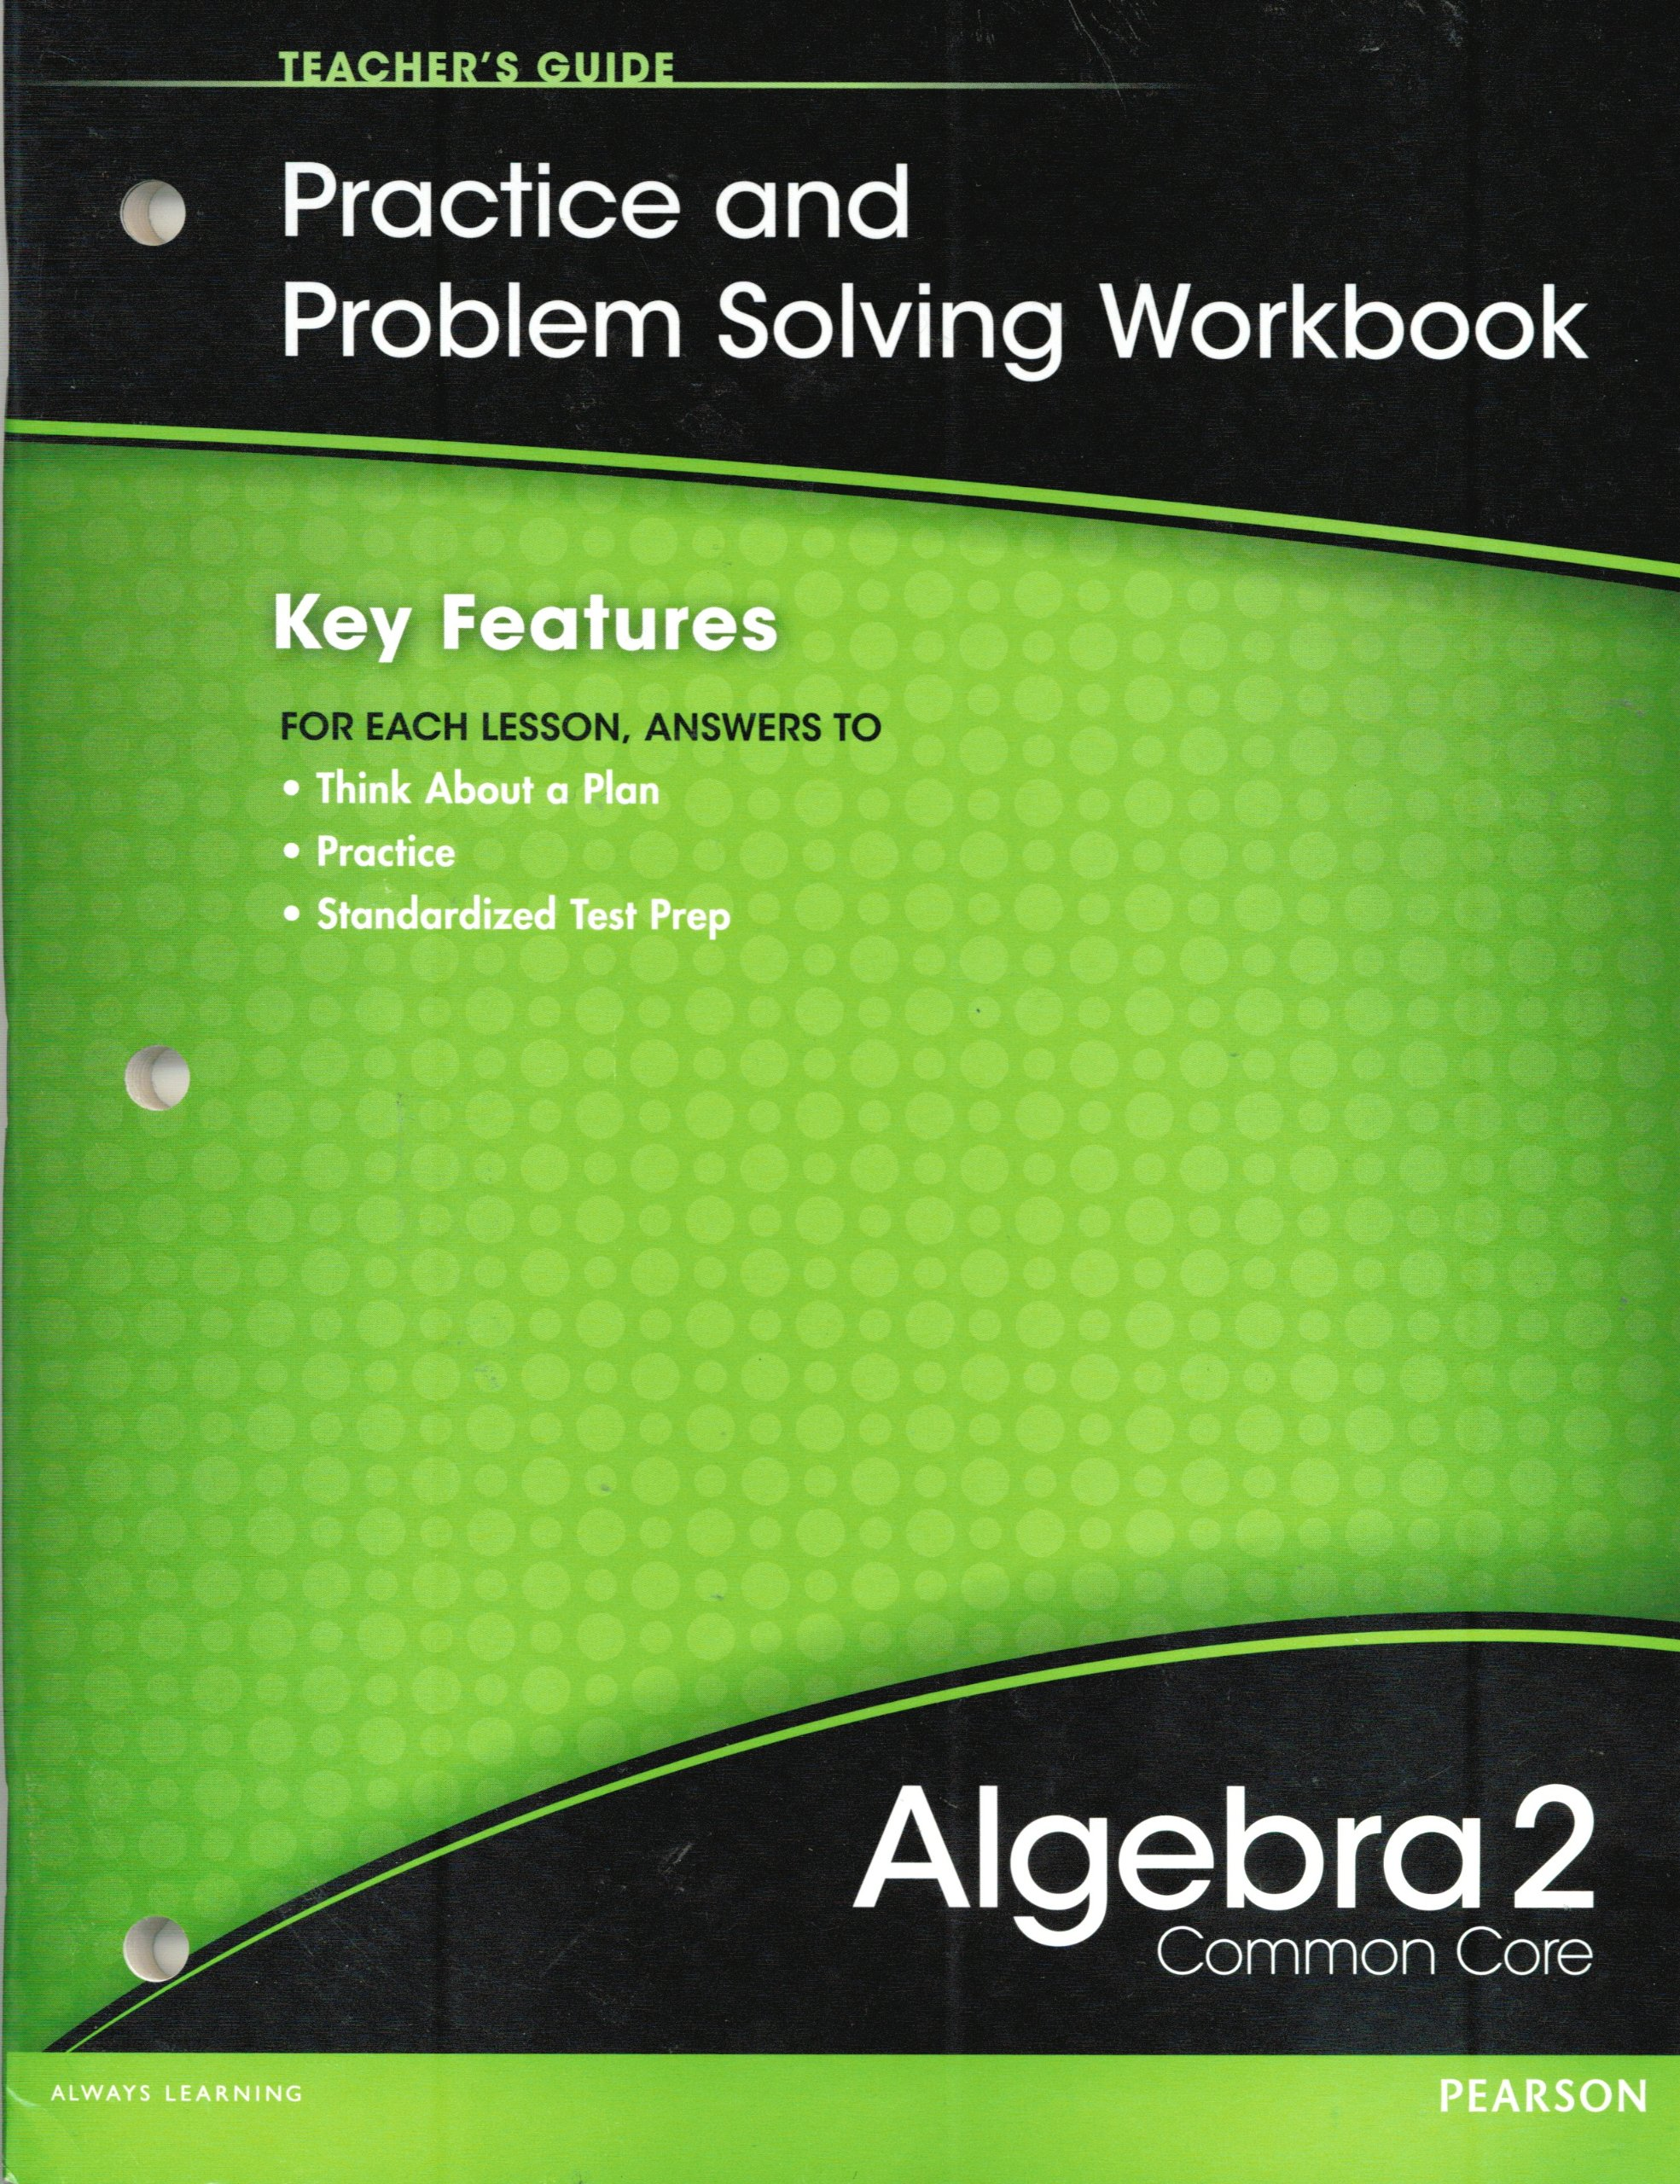 worksheet Algebra 2 Worksheet Answers Prentice Hall pearson algebra 2 common core practice problem solving workbook teachers guide staff 9780133188448 amazon com boo